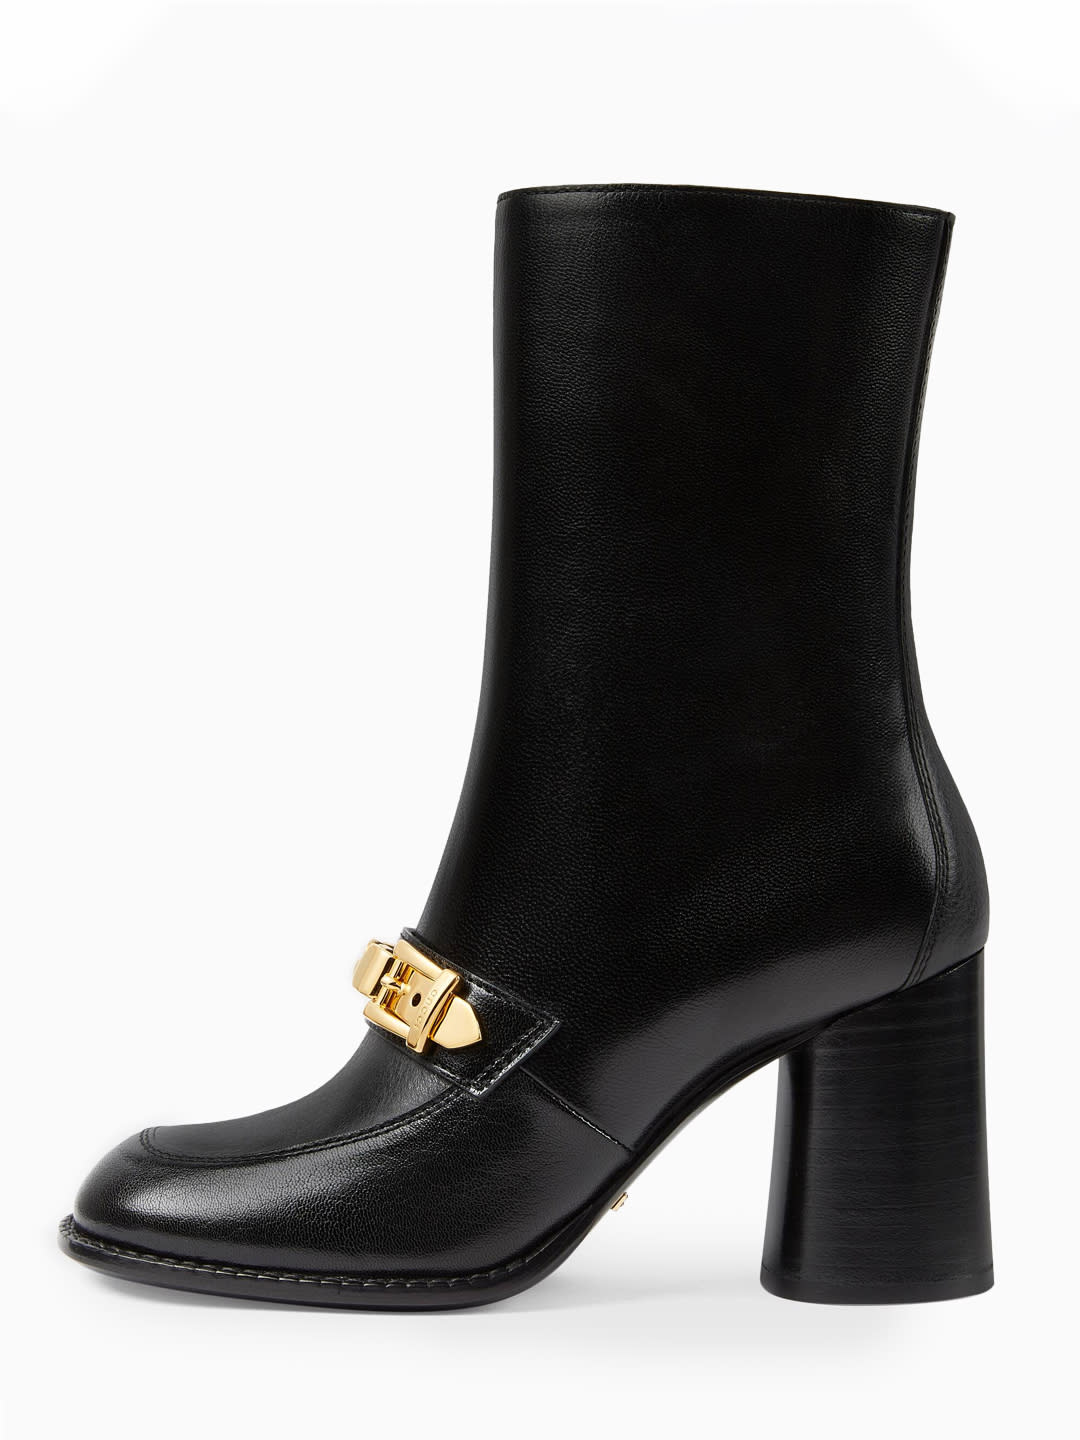 GUCCI SYLVIE CHAIN ANKLE BOOT BLACK